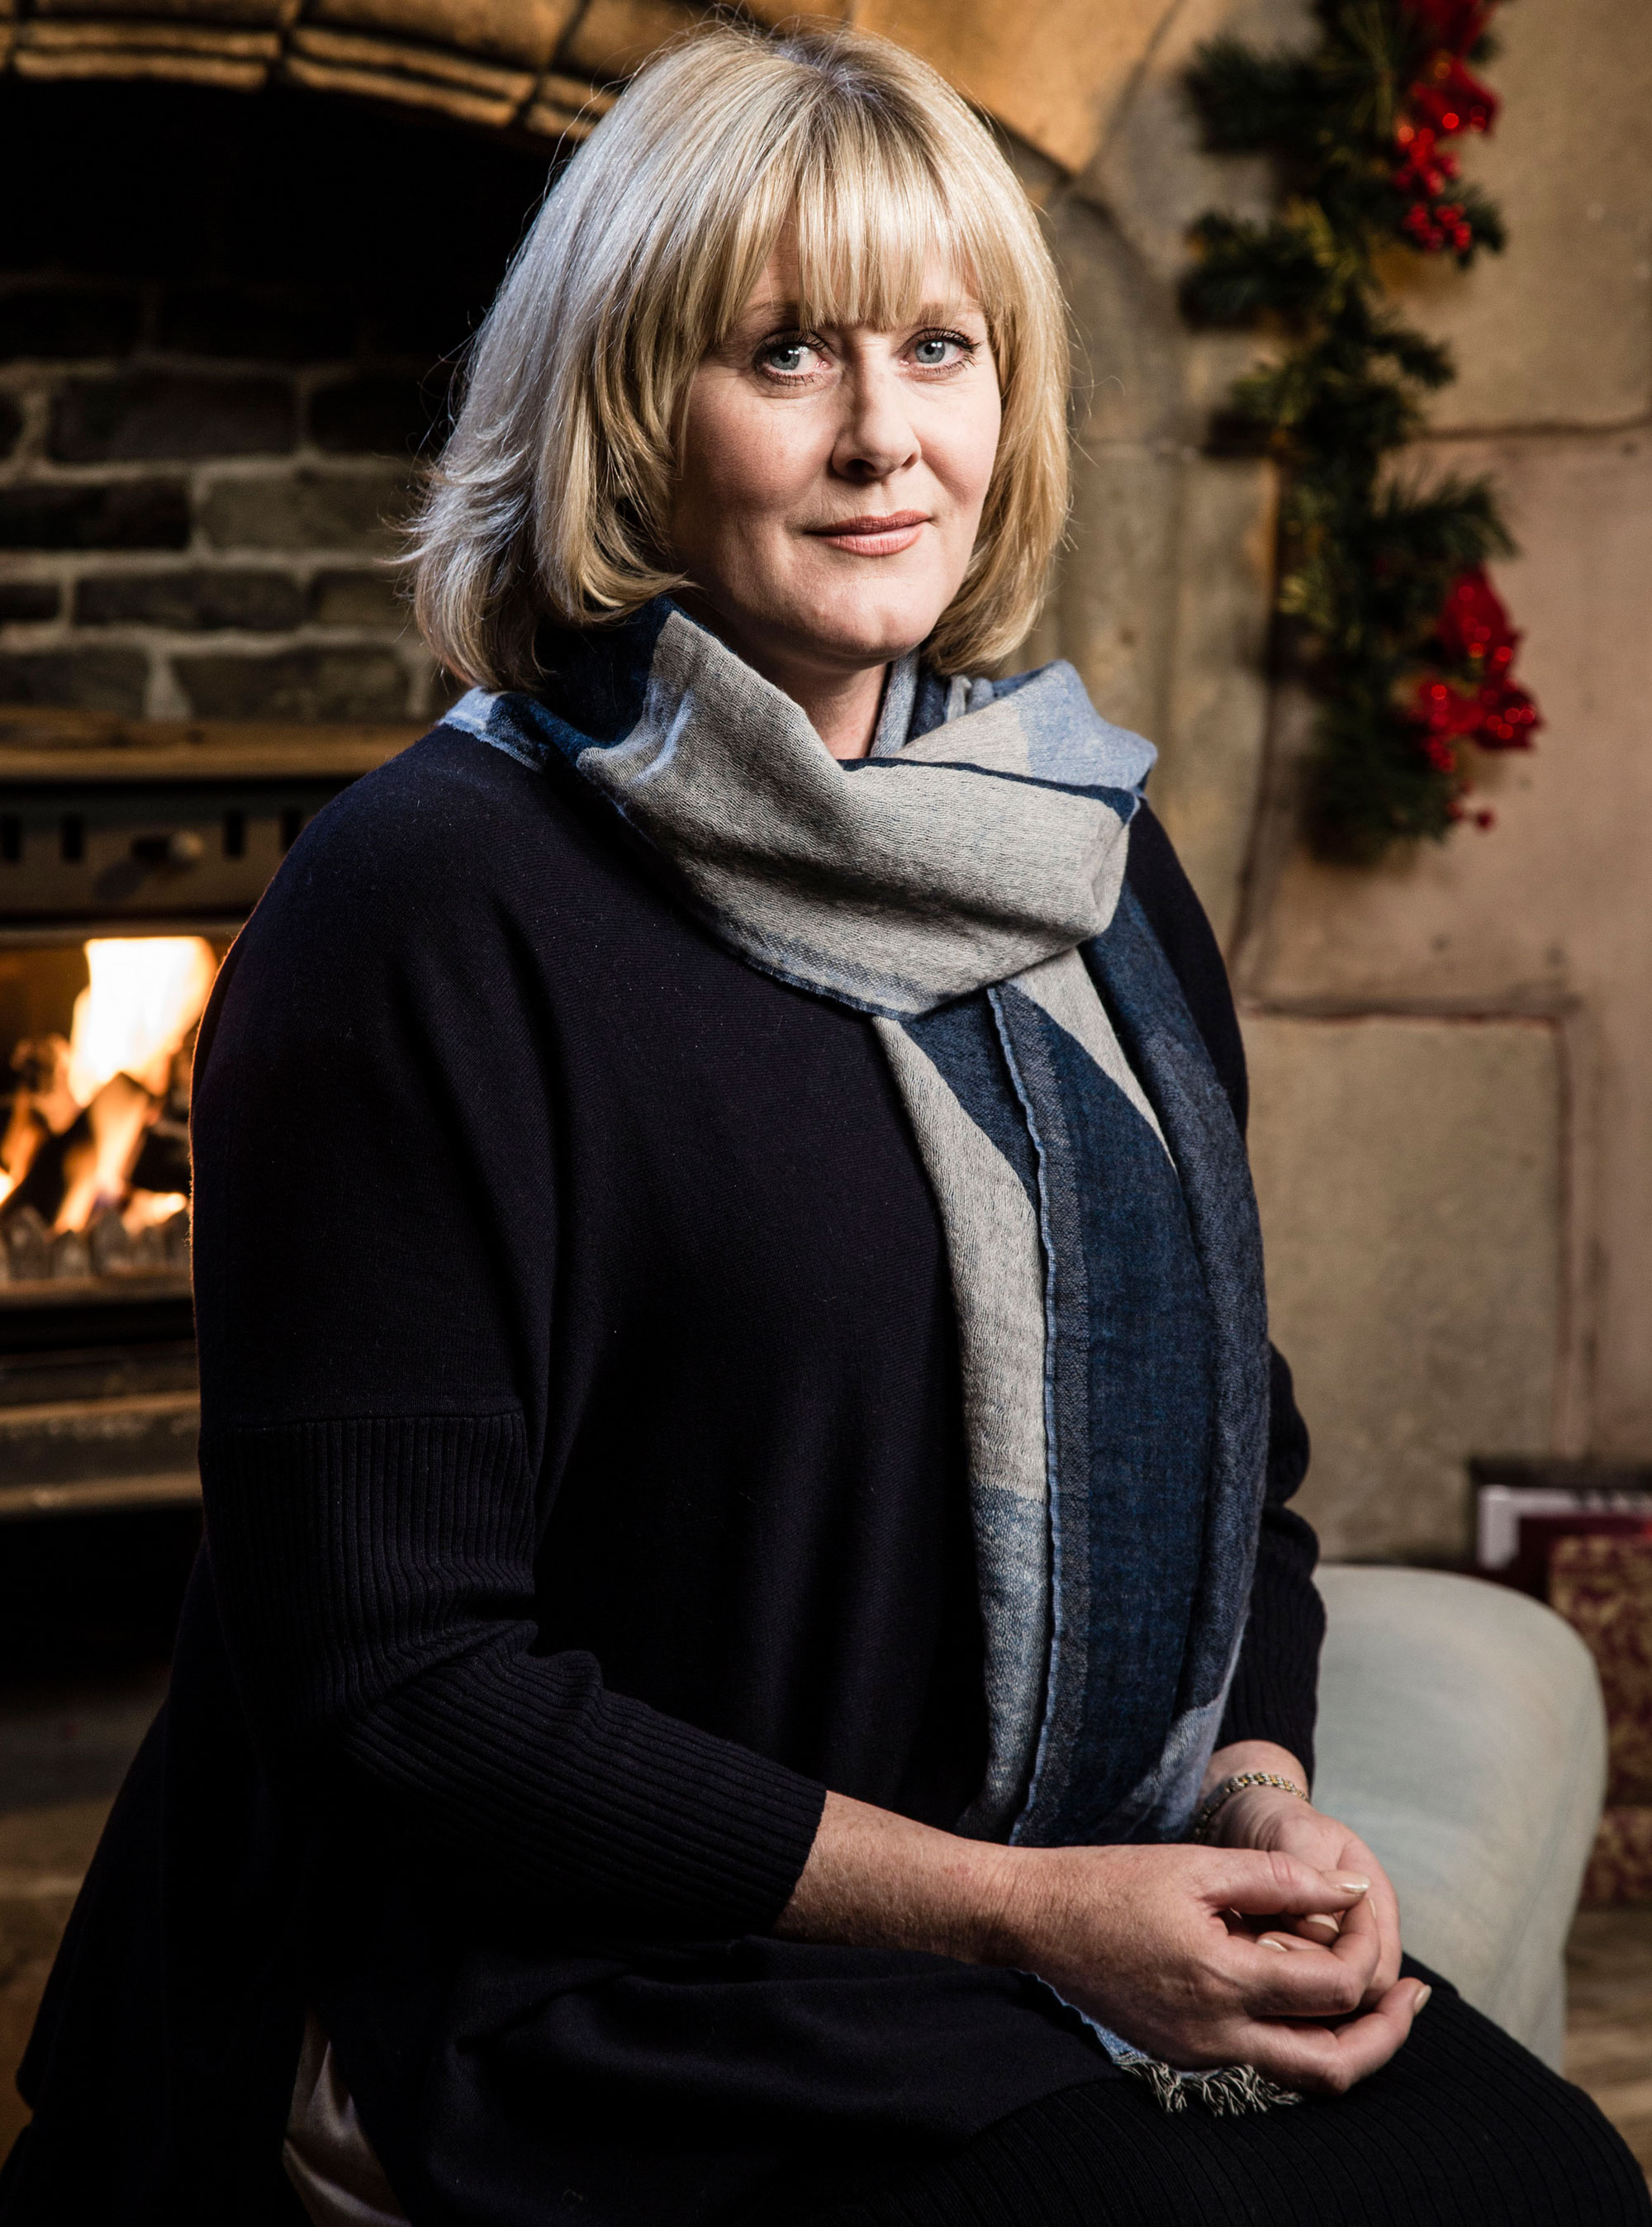 sarah lancashire dailymotionsarah lancashire interview, sarah lancashire where the heart is, sarah lancashire dailymotion, sarah lancashire 2017, sarah lancashire 2016, sarah lancashire doctor who, sarah lancashire height weight, sarah lancashire twin brother, sarah lancashire latest news, sarah lancashire father, sarah lancashire wiki, sarah lancashire instagram, sarah lancashire gary hargreaves, sarah lancashire quotes